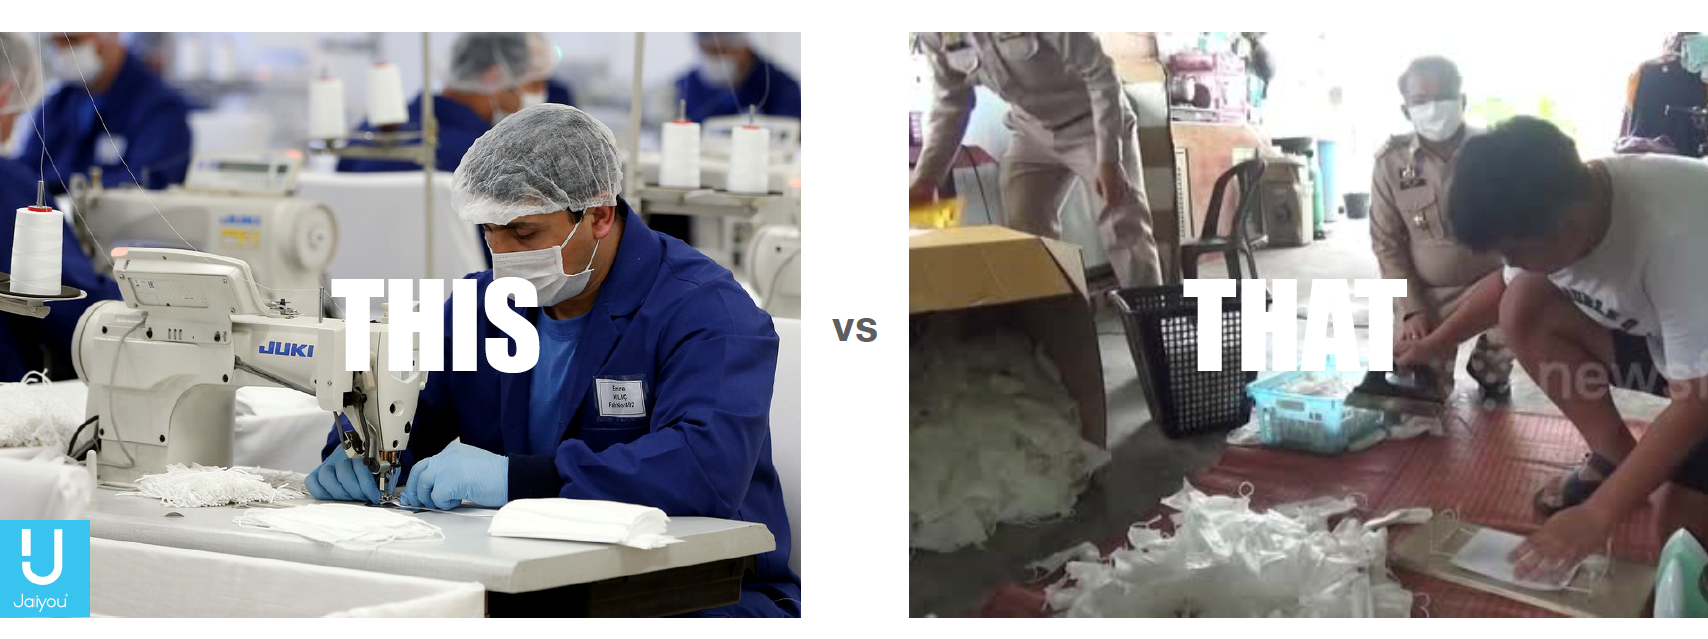 Two different scenarios of PPE production factories. On the left, a guy who uses the right is sewing the surgical masks in a clean workspace. On the right side, there are two guys, in a dirty space, making masks on the floor.